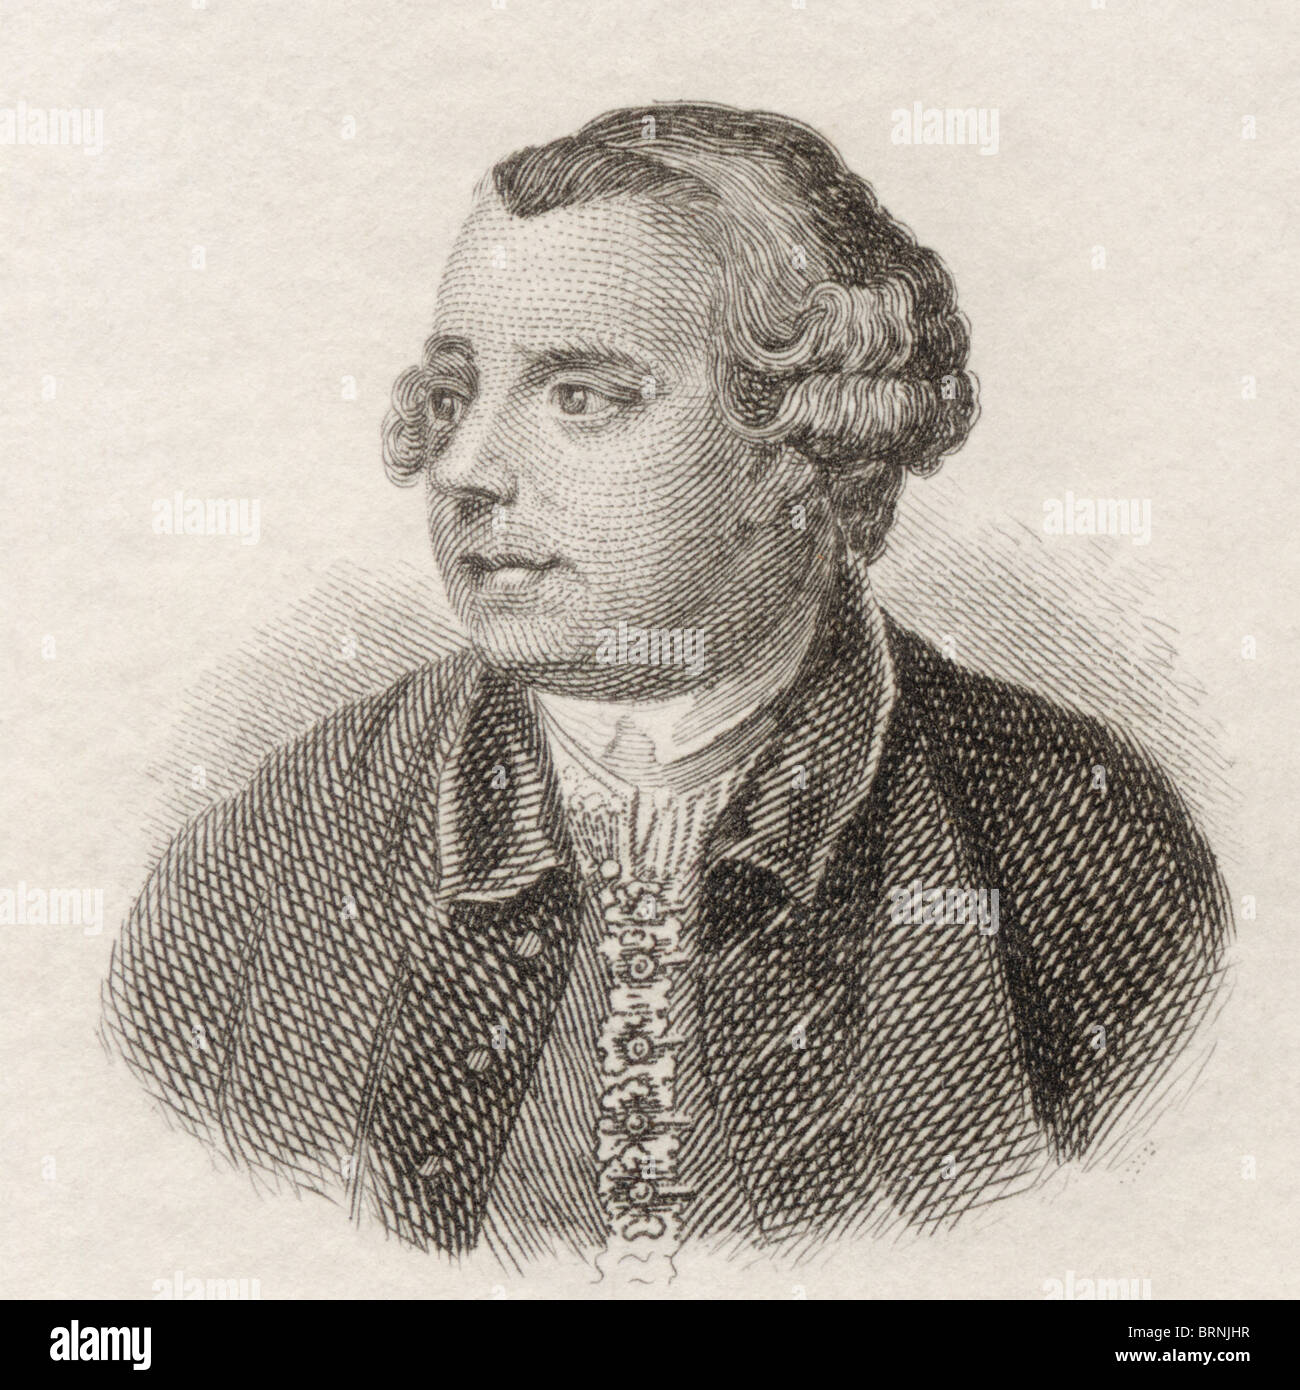 Edward Moore, 1712 to 1757. English dramatist and miscellaneous writer. - Stock Image